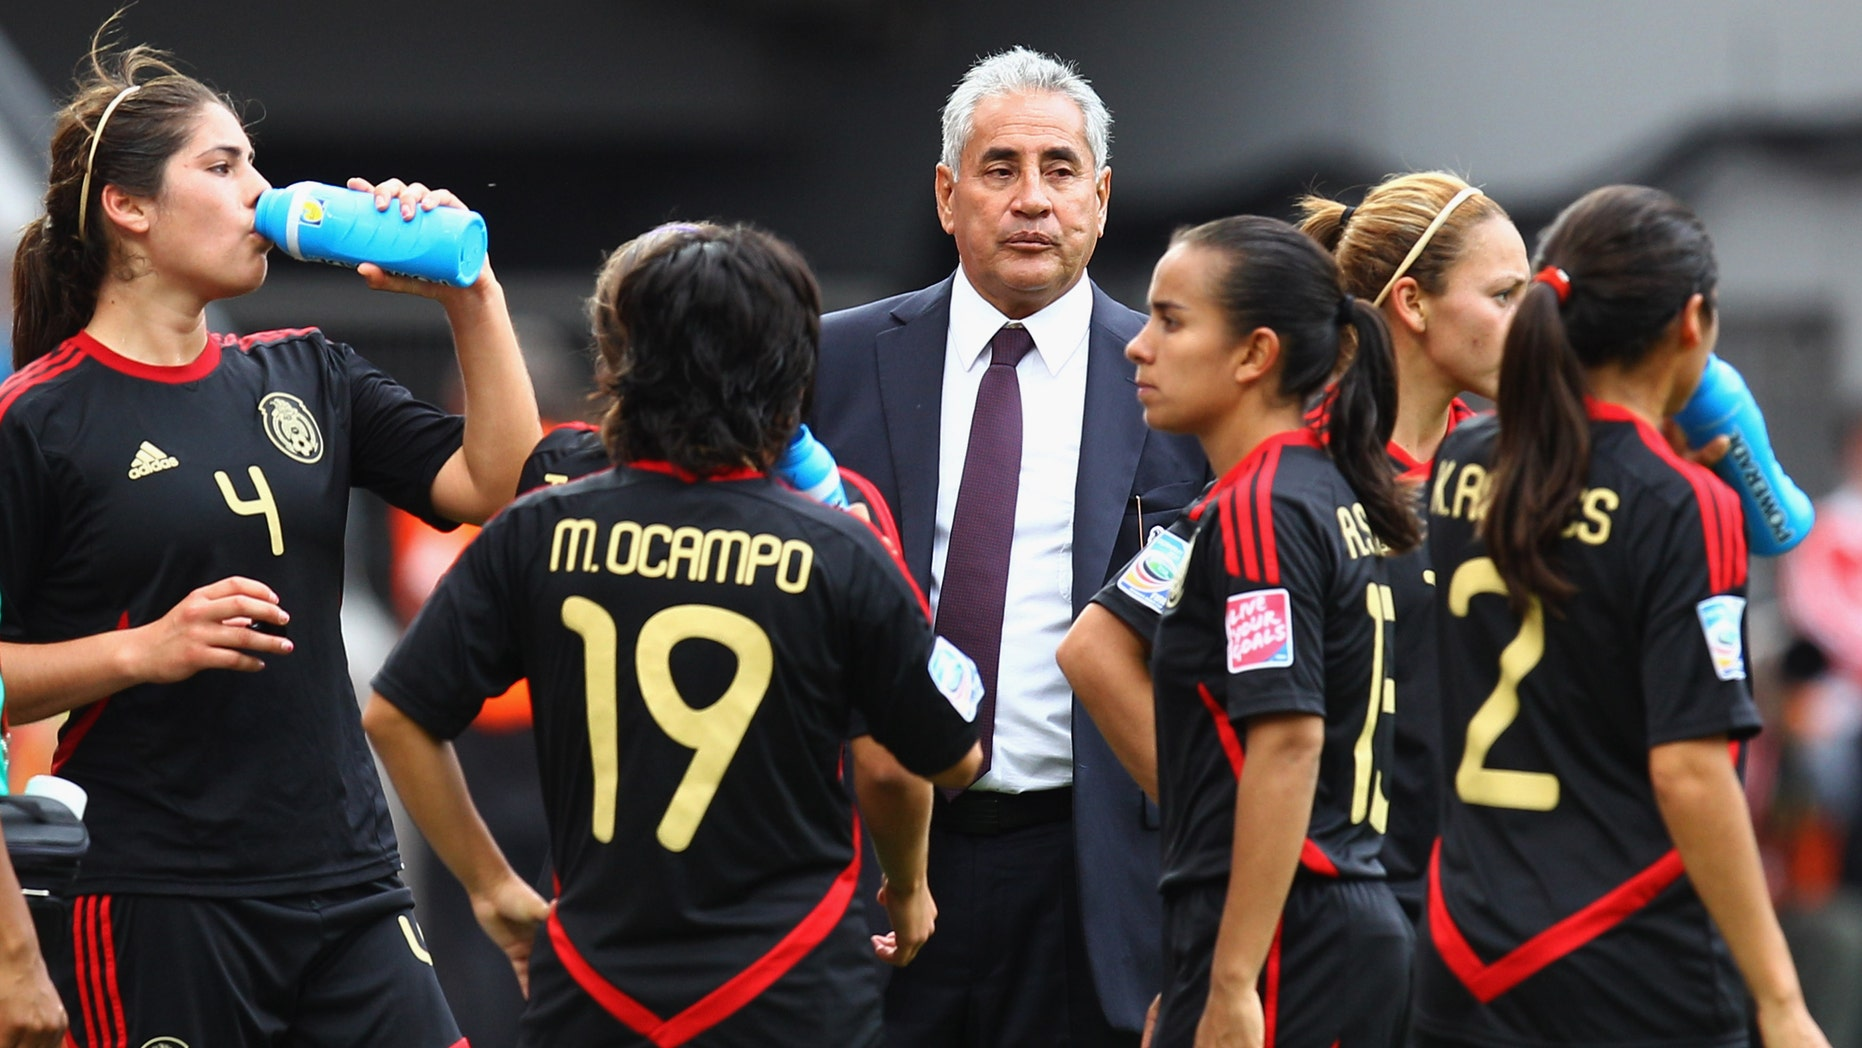 Head coach Leonardo Cuellar of Mexico stands next to his team after the FIFA Women World Cup 2011 Group B match between Japan and Mexico.  (Photo by Alex Grimm/Getty Images)